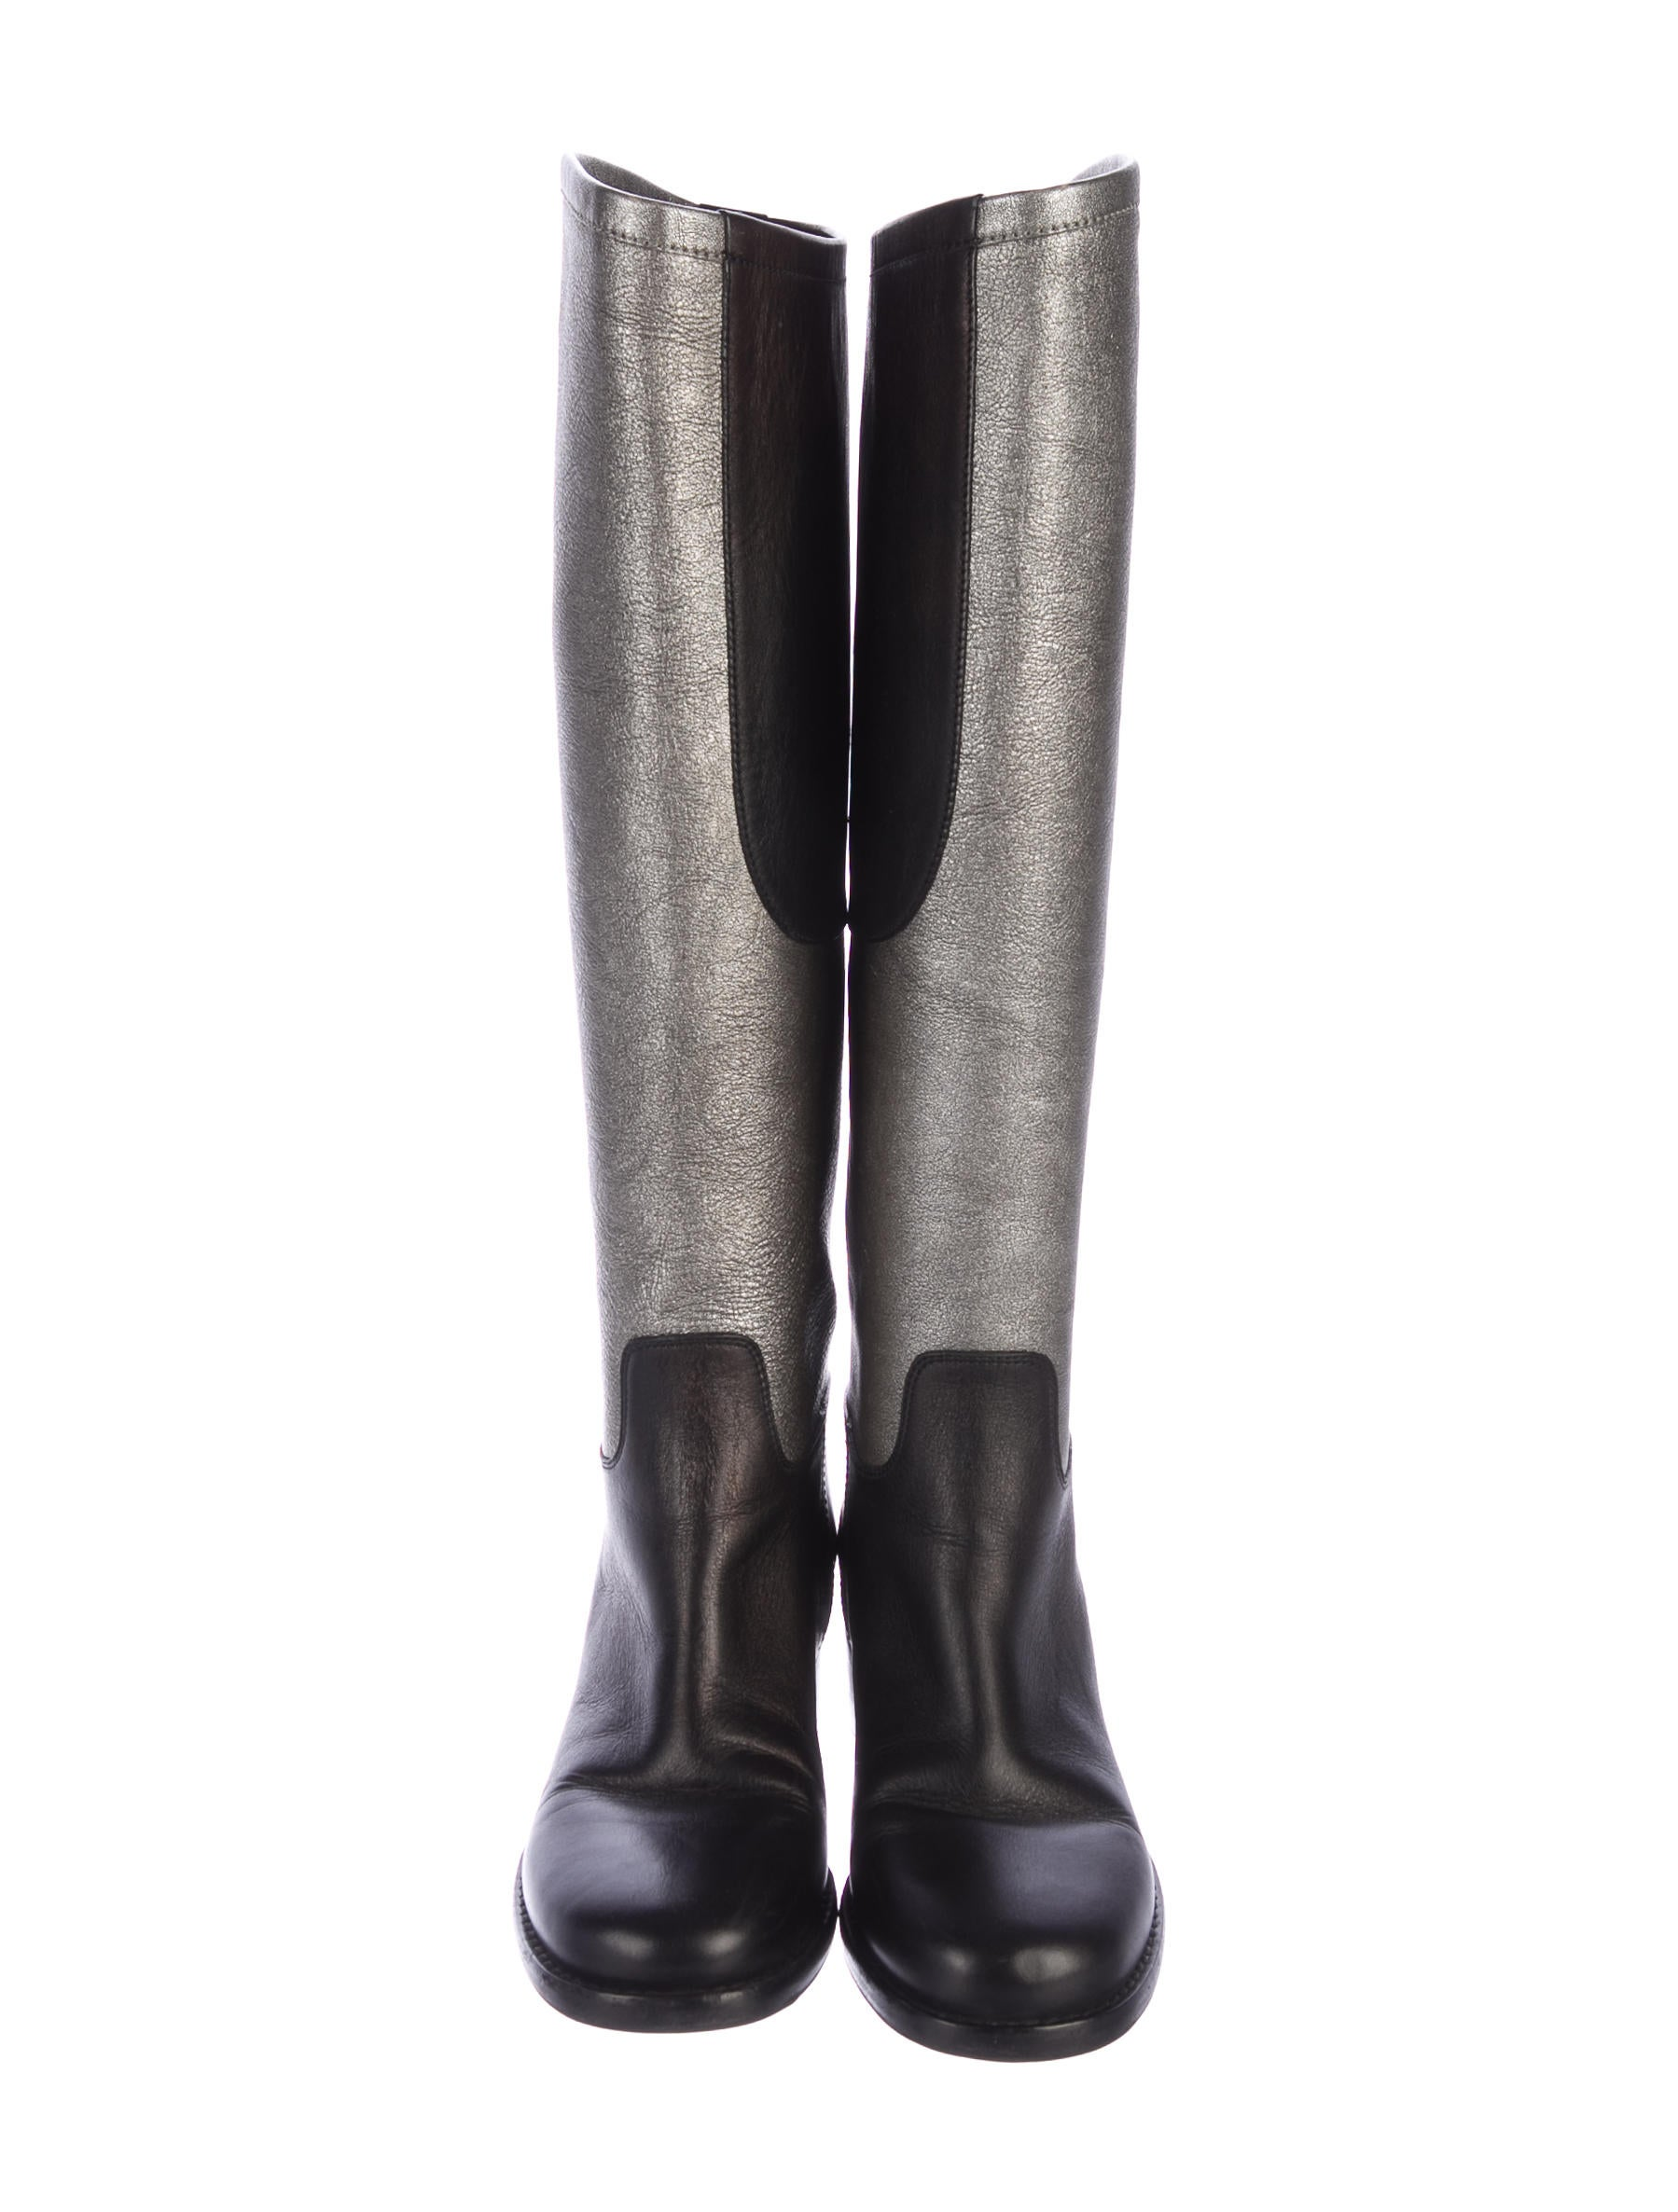 Metallic Leather Boots : Chanel metallic leather knee high boots shoes